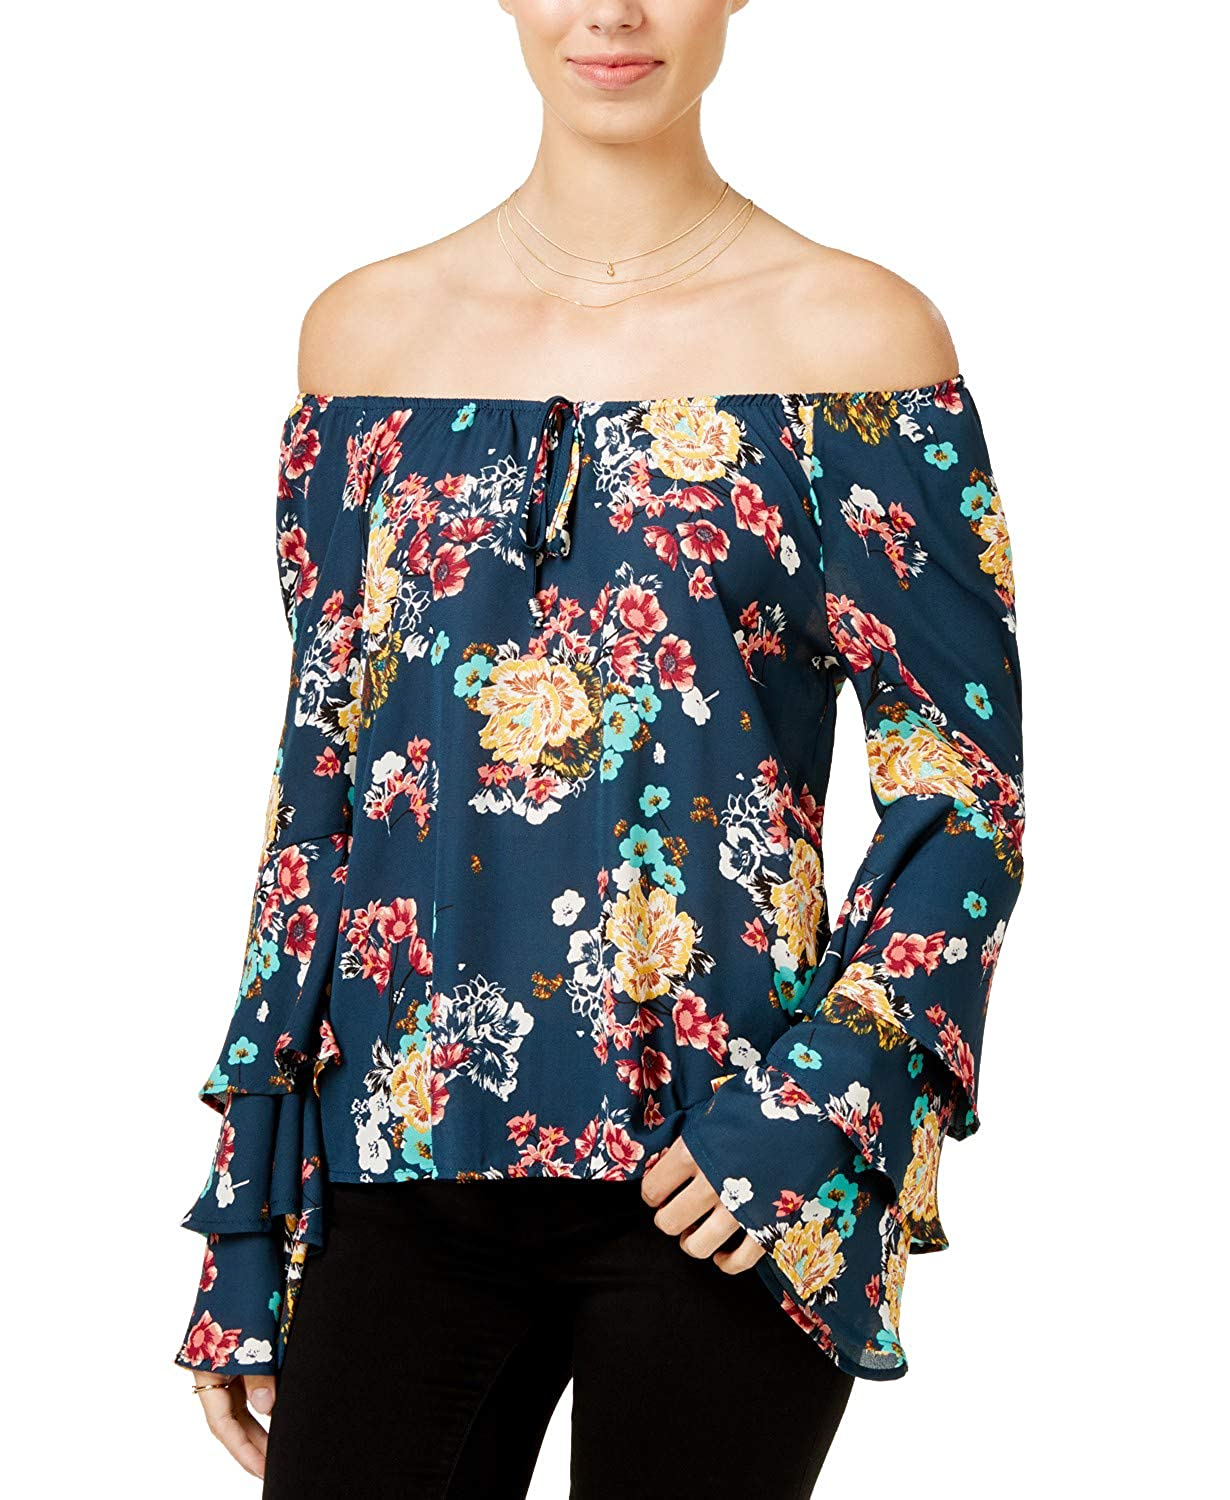 Lily Black Juniors Printed Off-The-Shoulder Ruffle-Sleeve Top